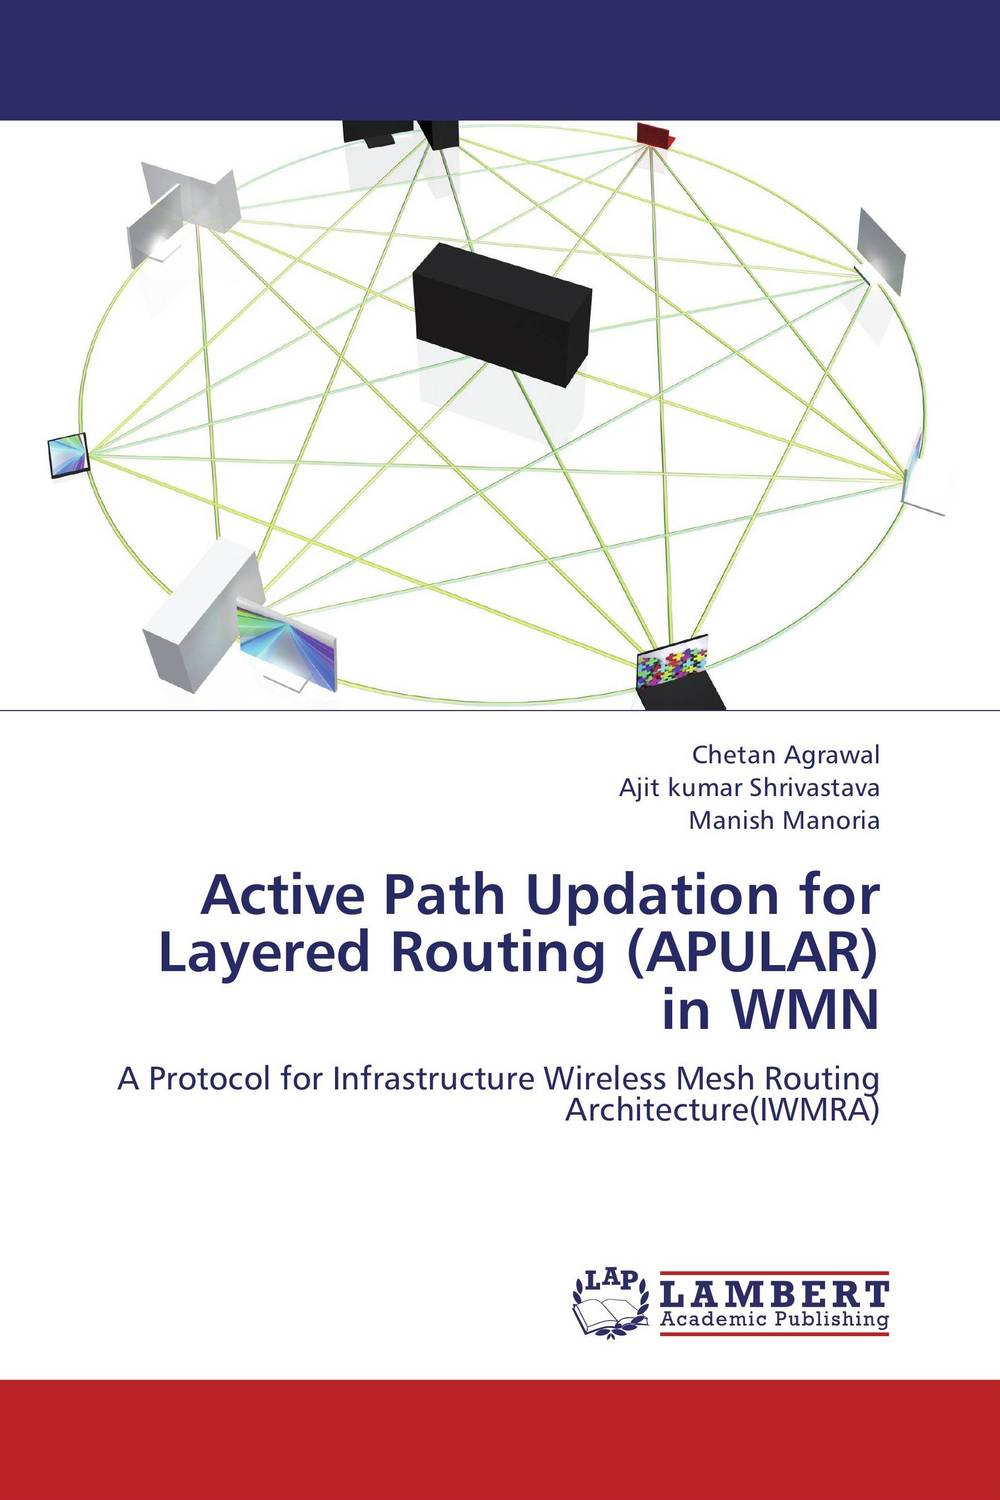 Active Path Updation for Layered Routing (APULAR) in WMN active path updation for layered routing apular in wmn